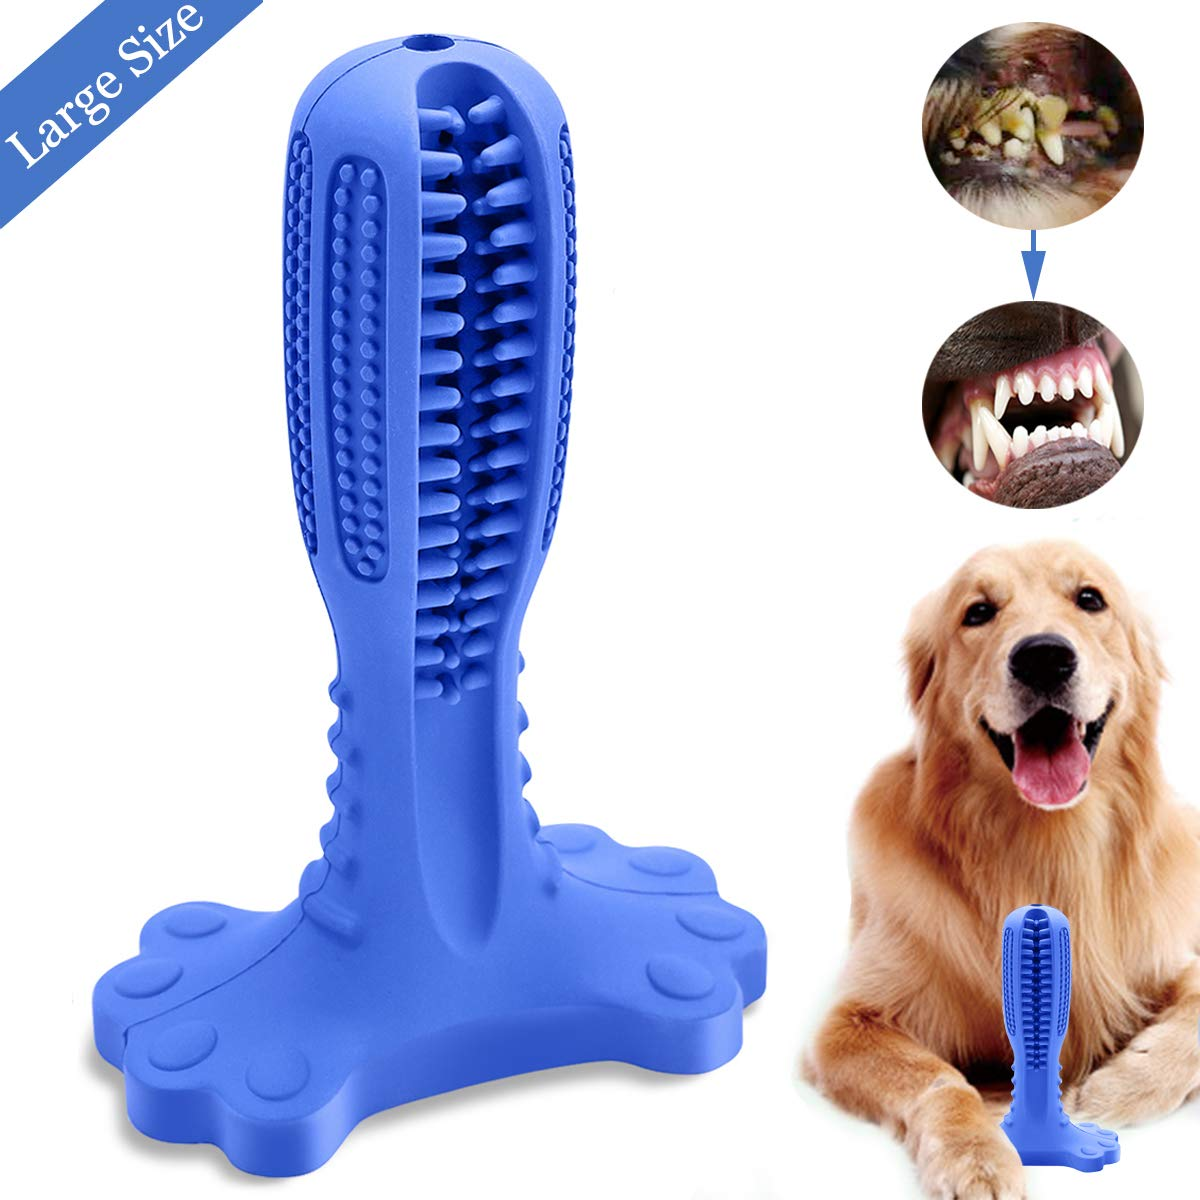 ANKEWAY Dog Chew Toothbrush-2019 Upgraded Version Large Size Natural Rubber Dog Teeth Cleaner Brushing Stick for Small, Medium and Large Dogs